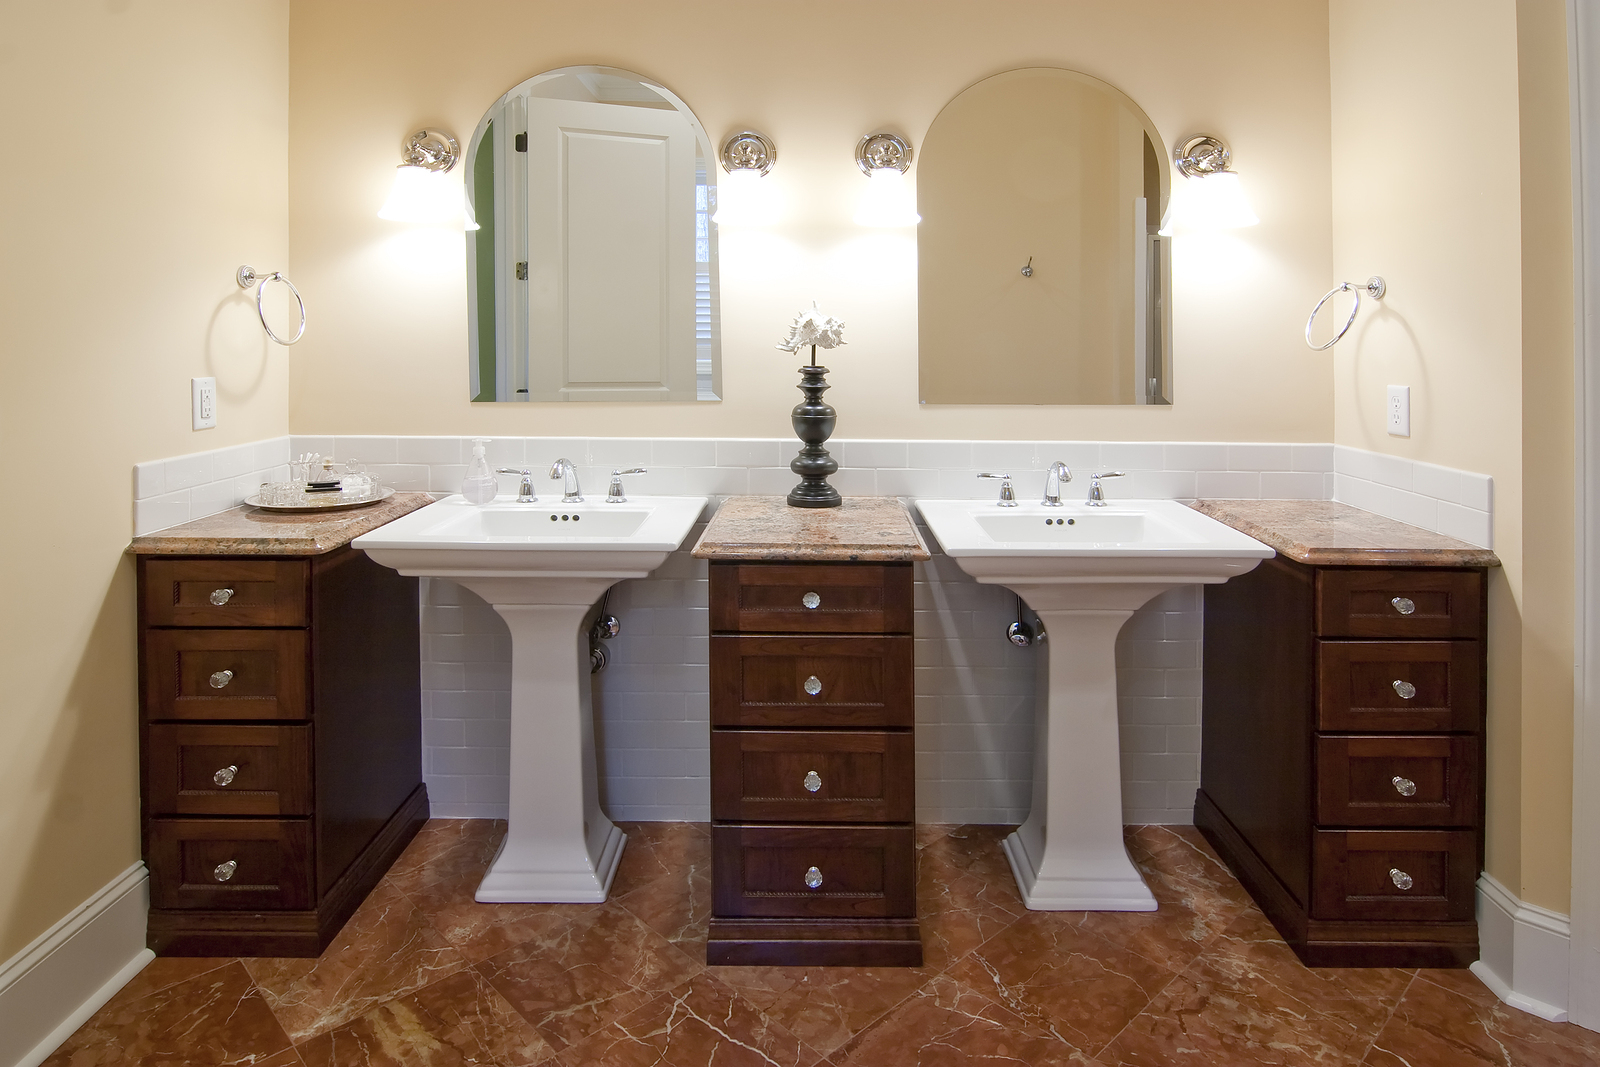 double sinks in luxury bathroom